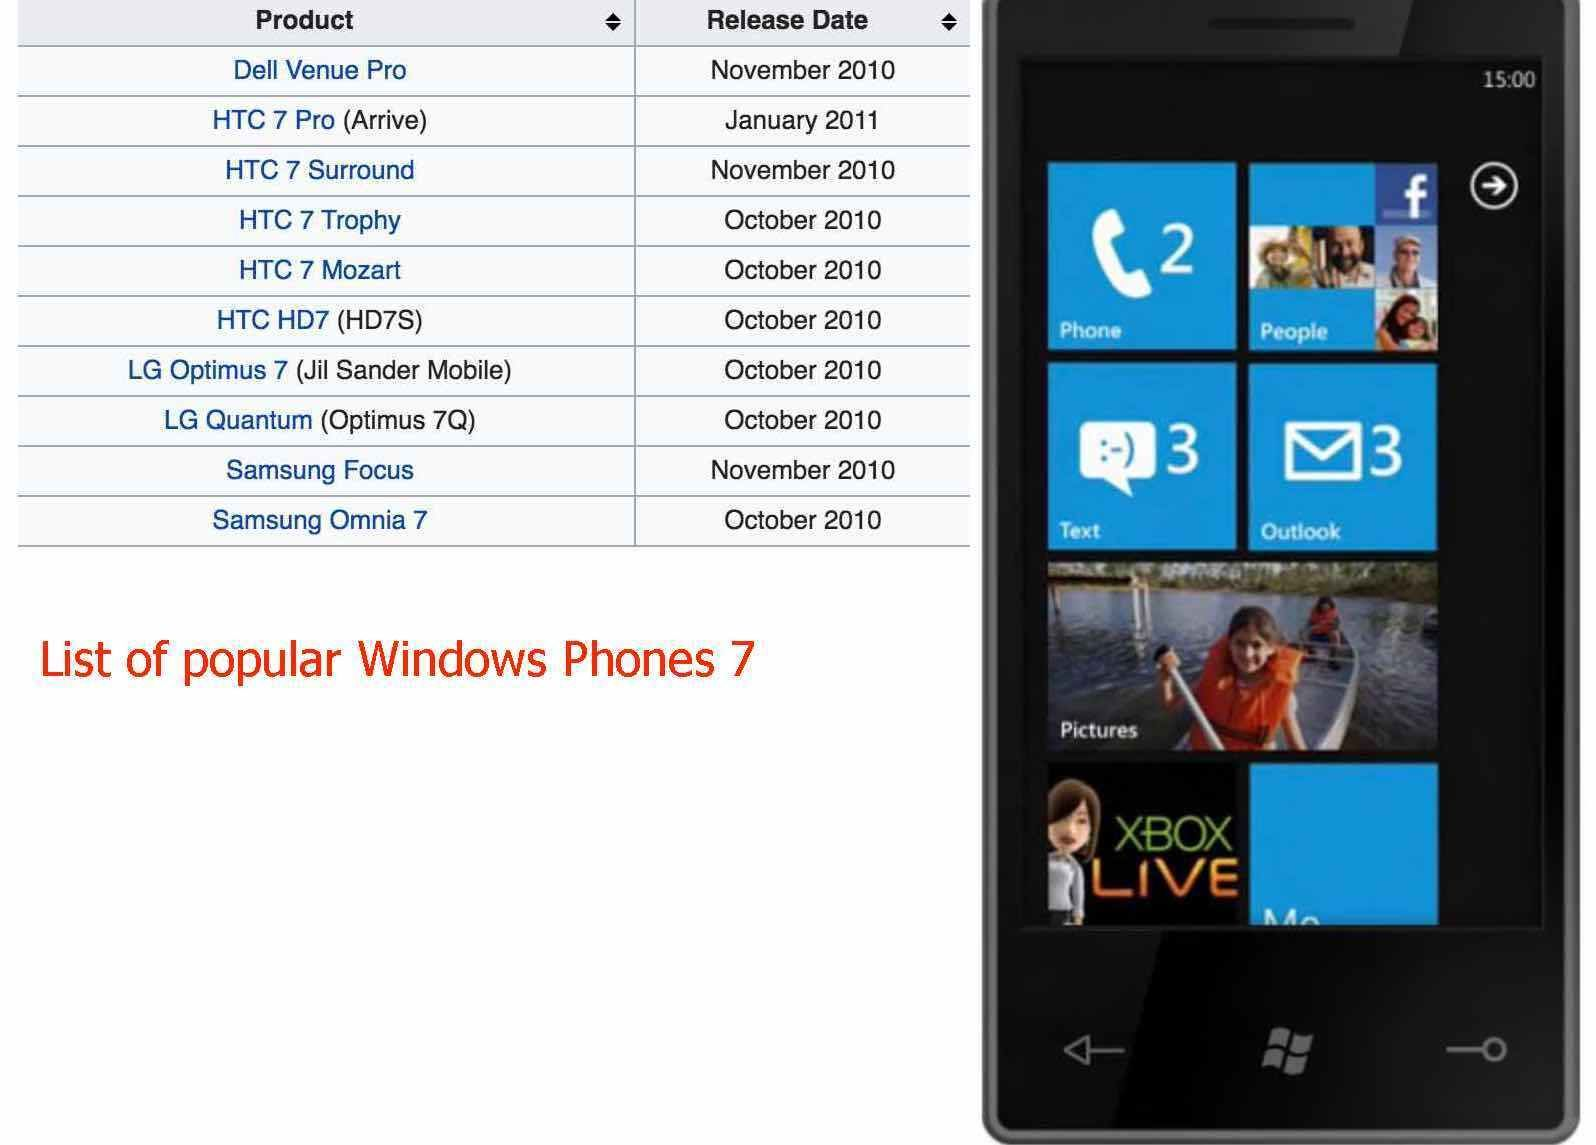 Sideload .xap Apps to Windows Phones 7 Series via Your PC